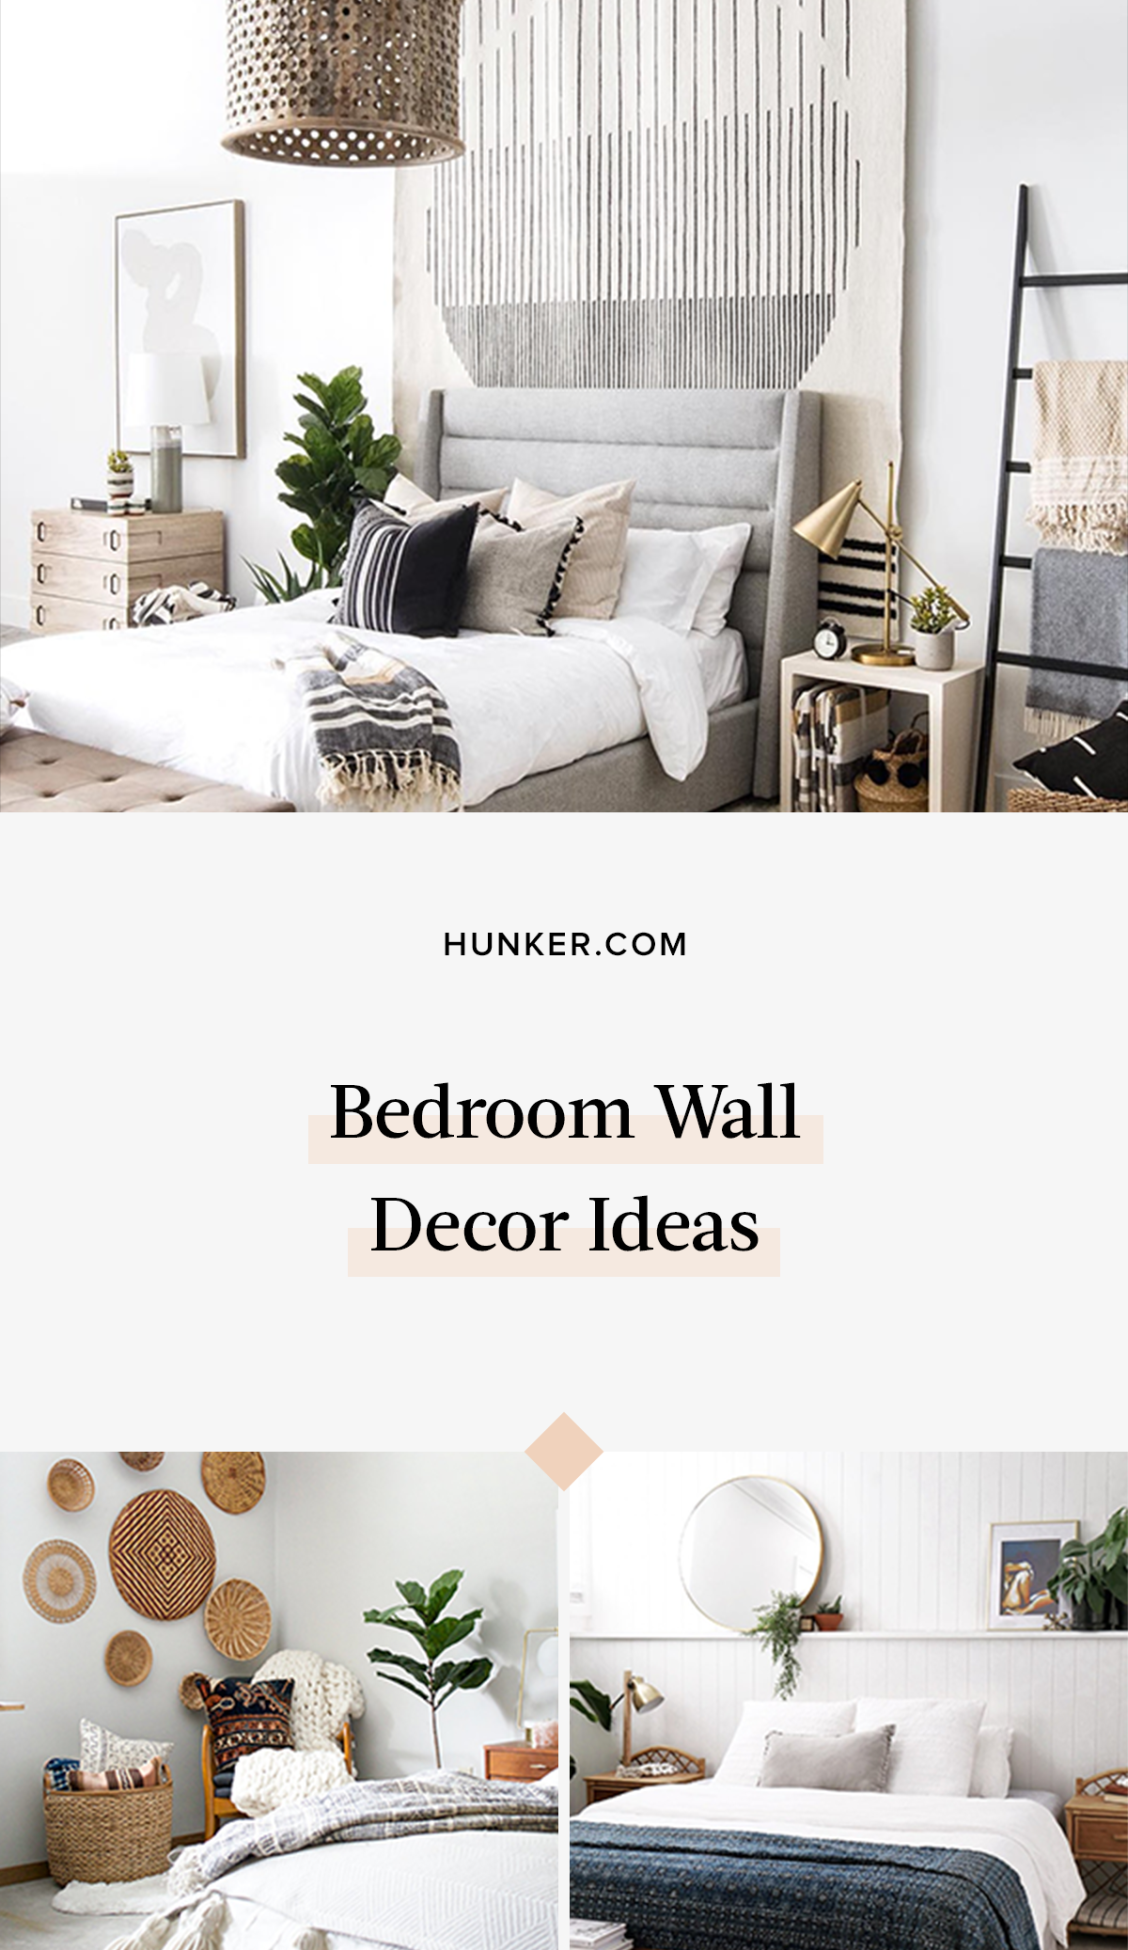 8 Clever Bedroom Wall Decor Ideas To Make The Most Of That Blank Space Wall Decor Bedroom Bedroom Wall Decor Above Bed Above Bed Decor